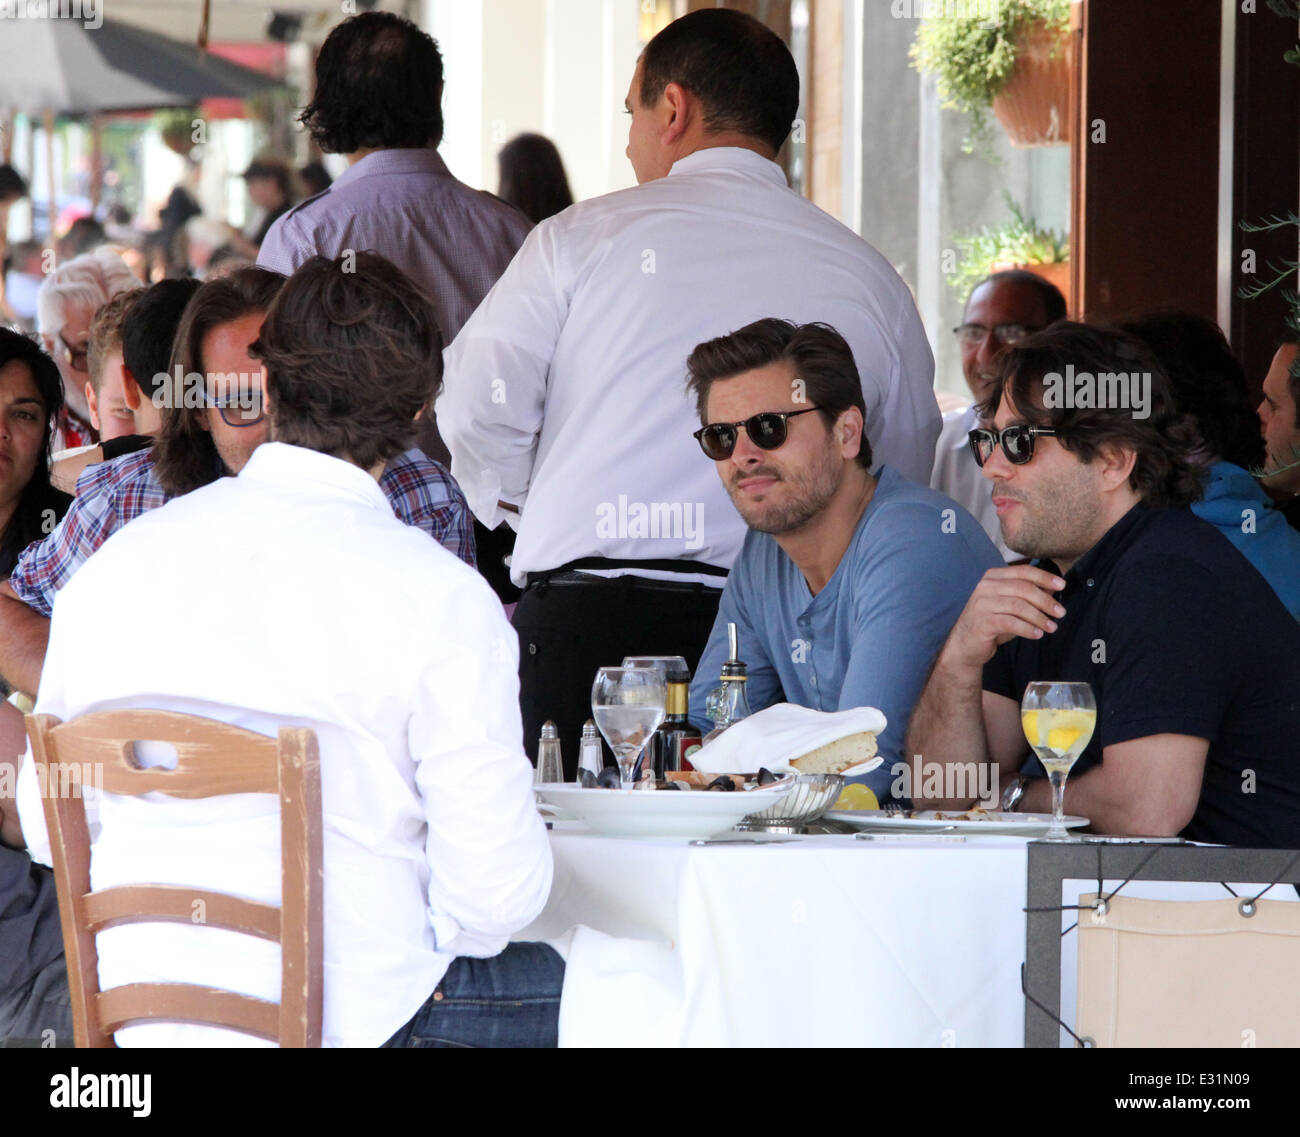 1951c0ec28e06 Scott Disick enjoys lunch with friends in Beverly Hills Featuring ...